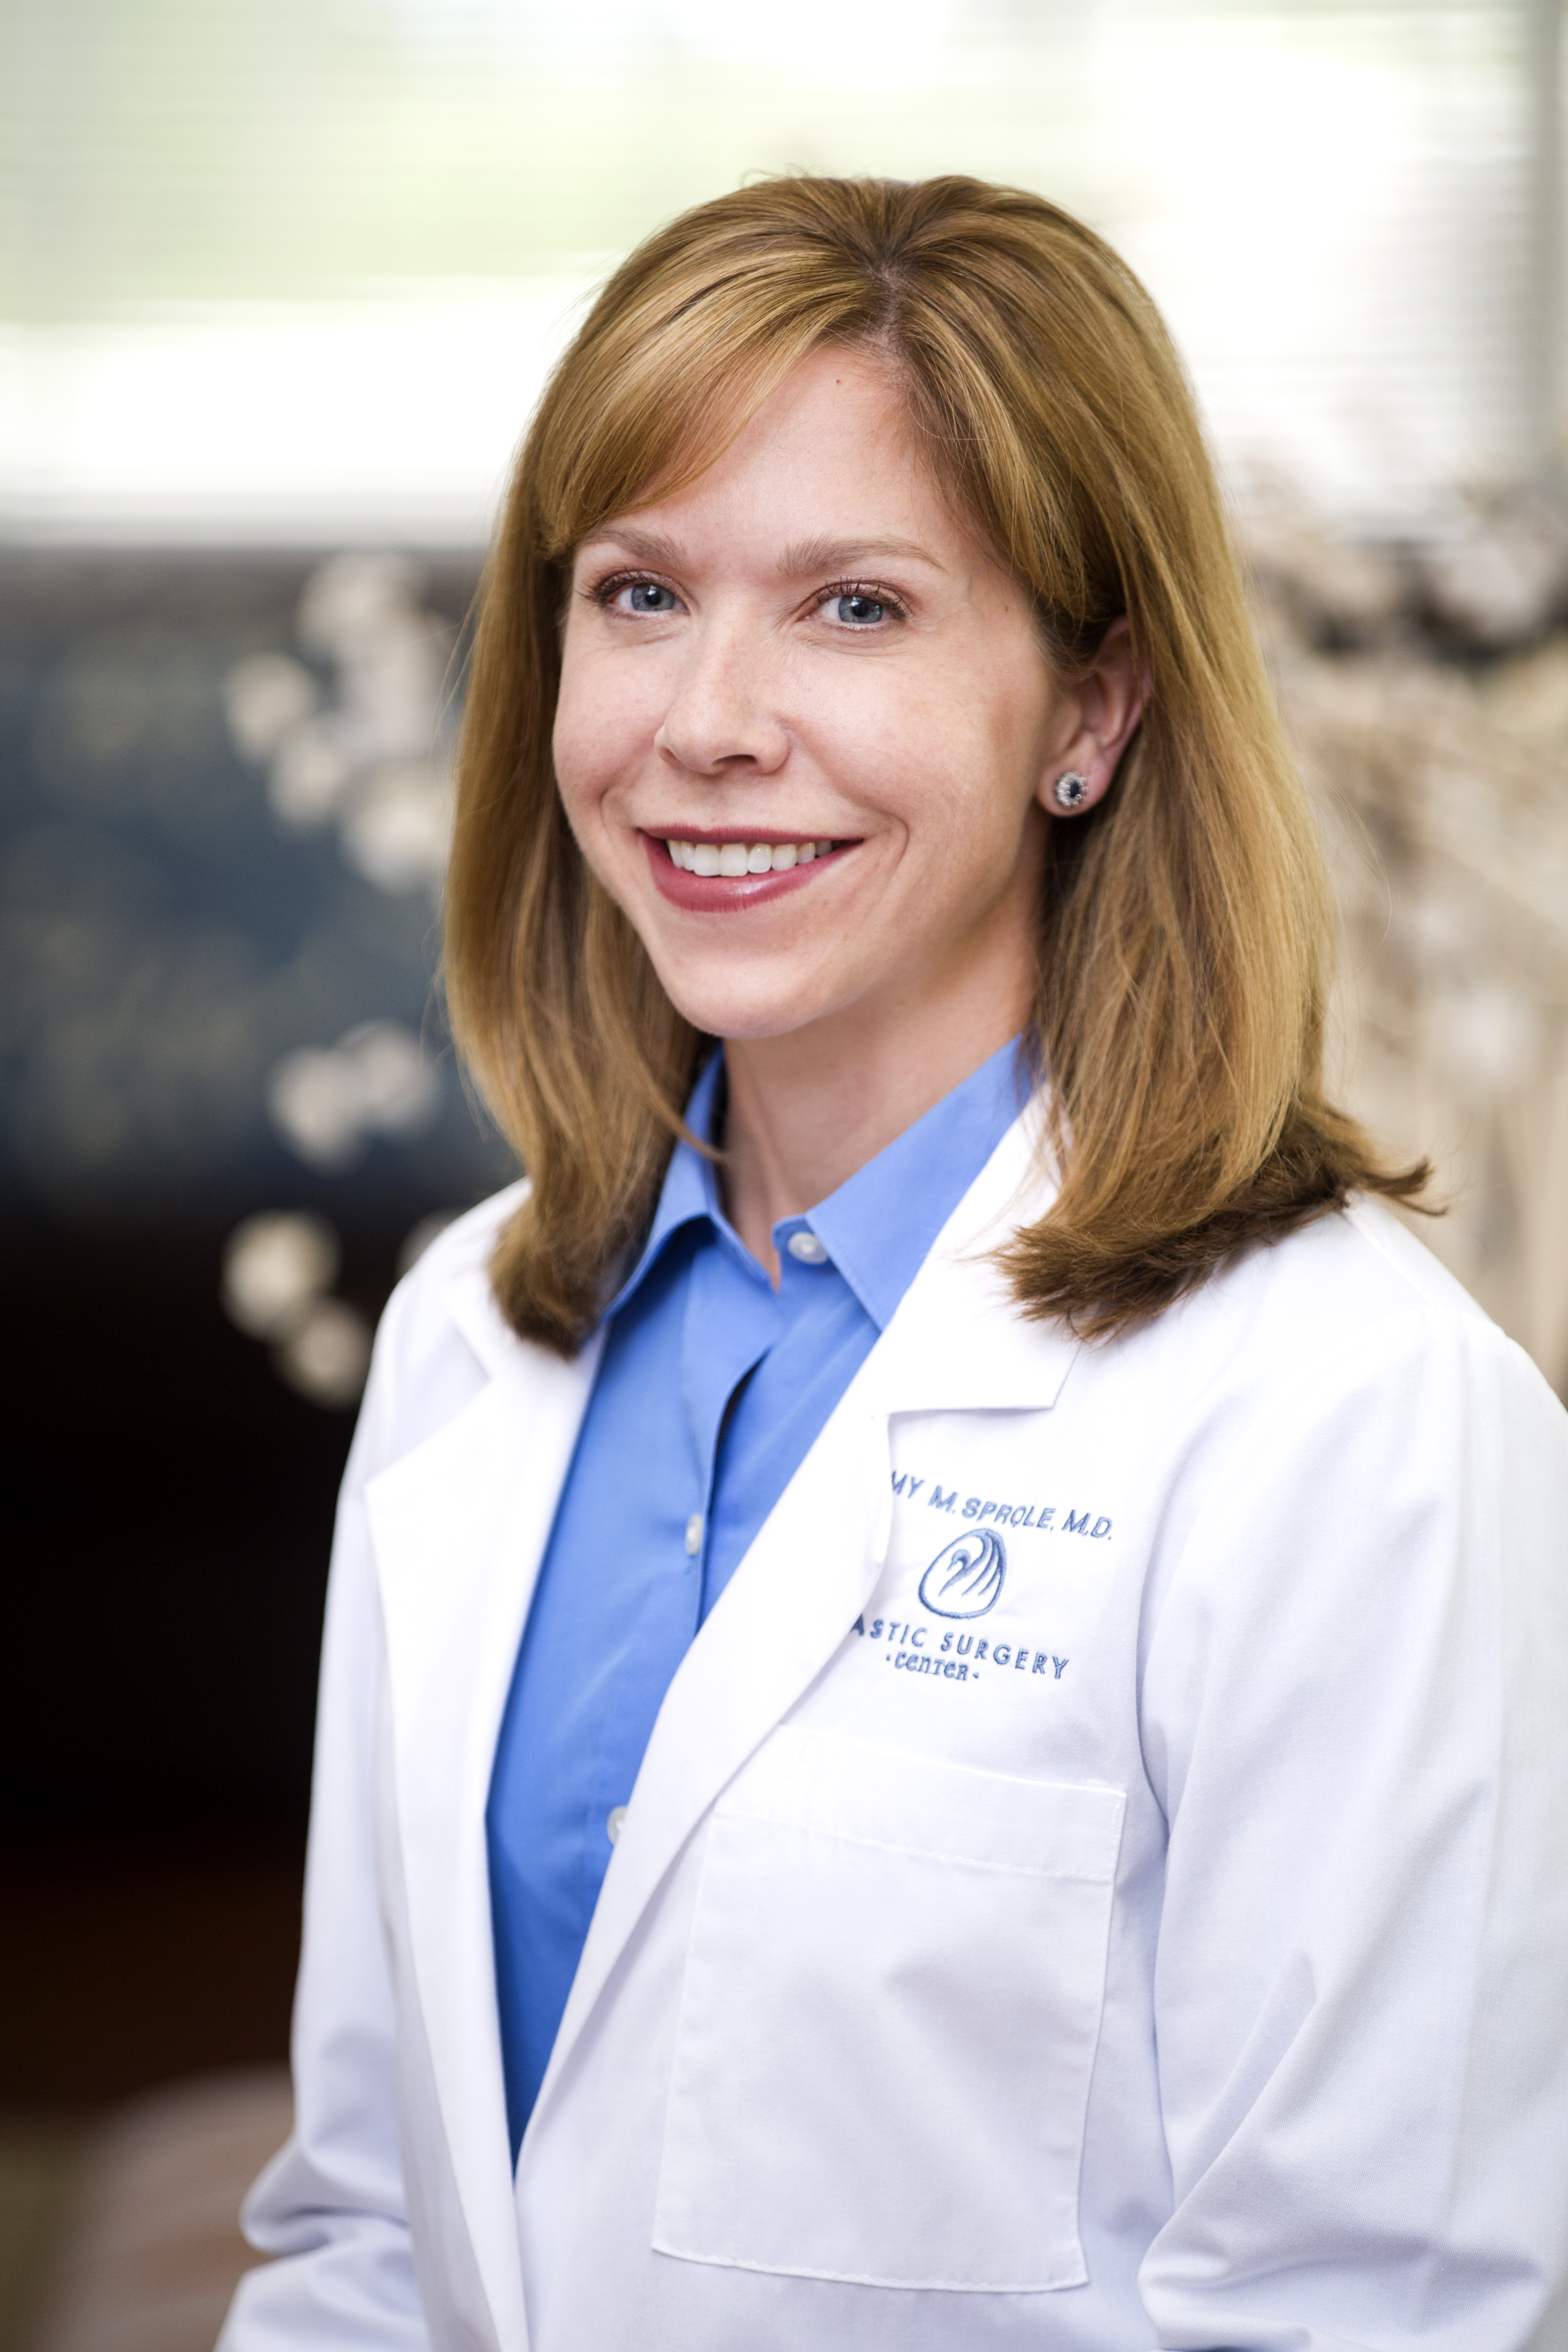 Amy Sprole, MD